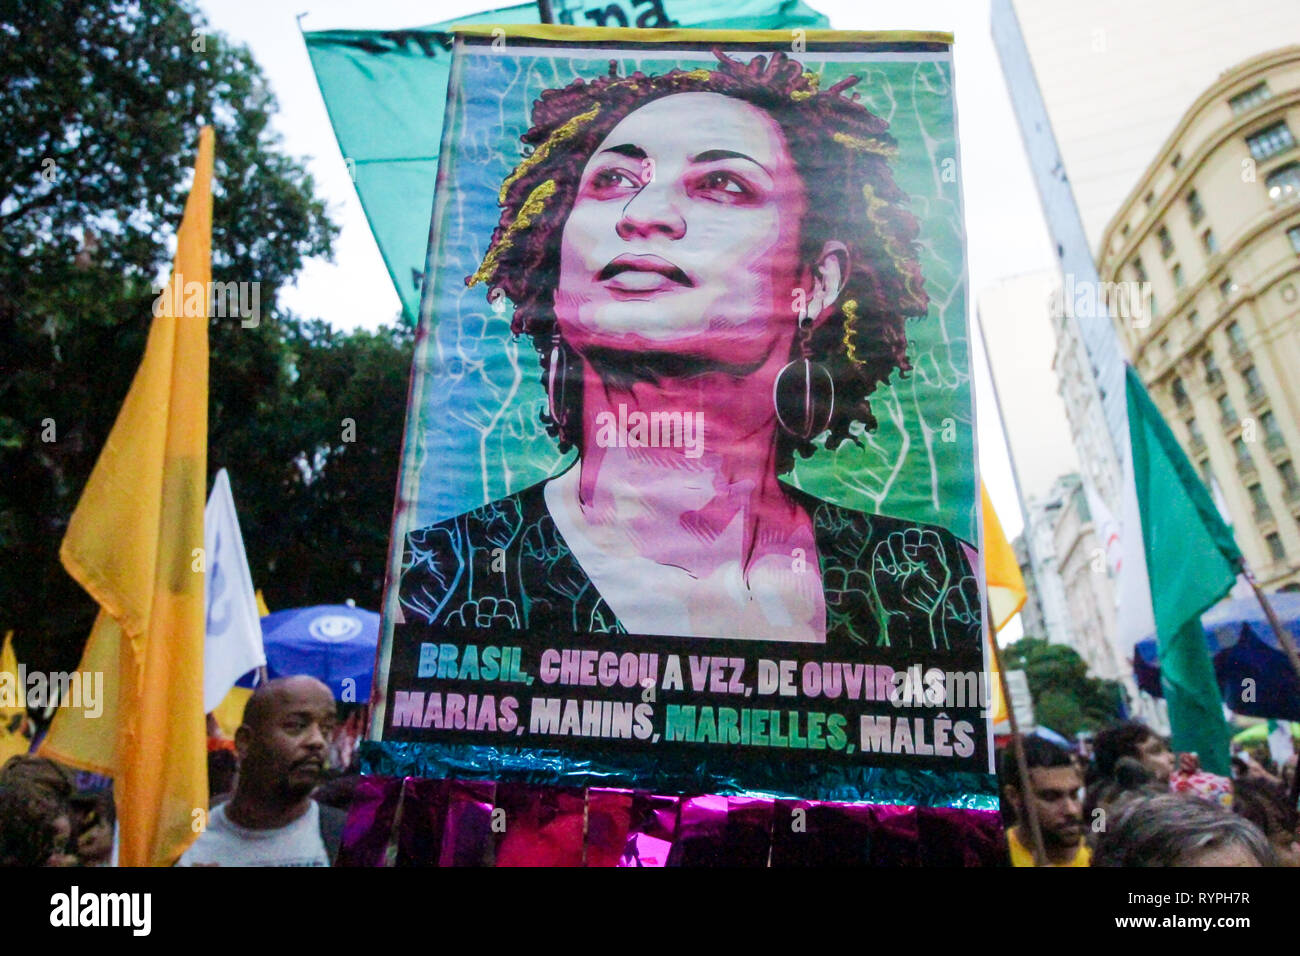 Rio de Janeiro, Brazil. 14th Mar, 2019. councilwoman Marielle Franco, her driver Andersom in an ambush and two days after the police present the possible murderers, In act to honor the memory of the victims,  in downtown Cinelândia, protesters charge the authorities with answers and that take the perpetrators. ELLAN LUSTOSA PHOTO Credit: Ellan Lustosa/Alamy Live News Stock Photo